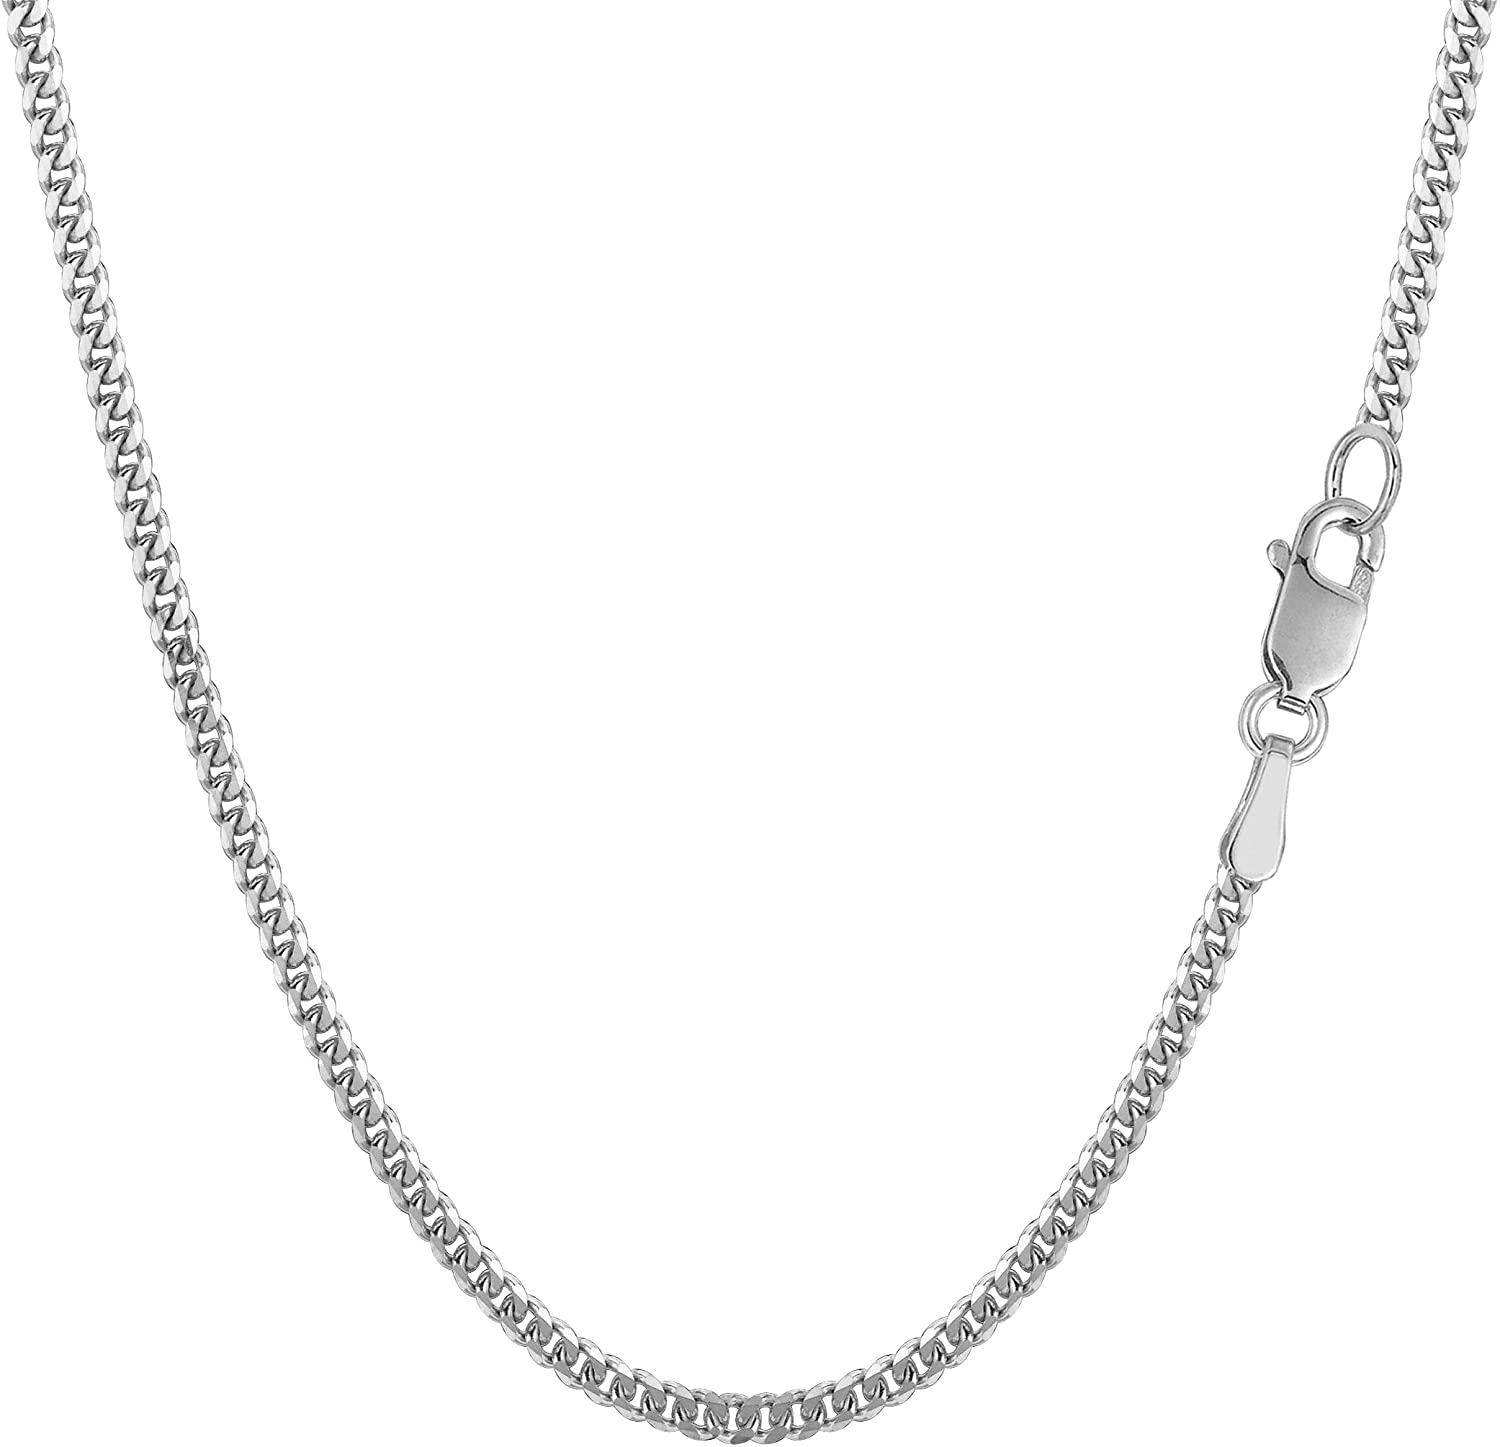 14k White Gold Gourmette Chain Necklace, 2.0mm